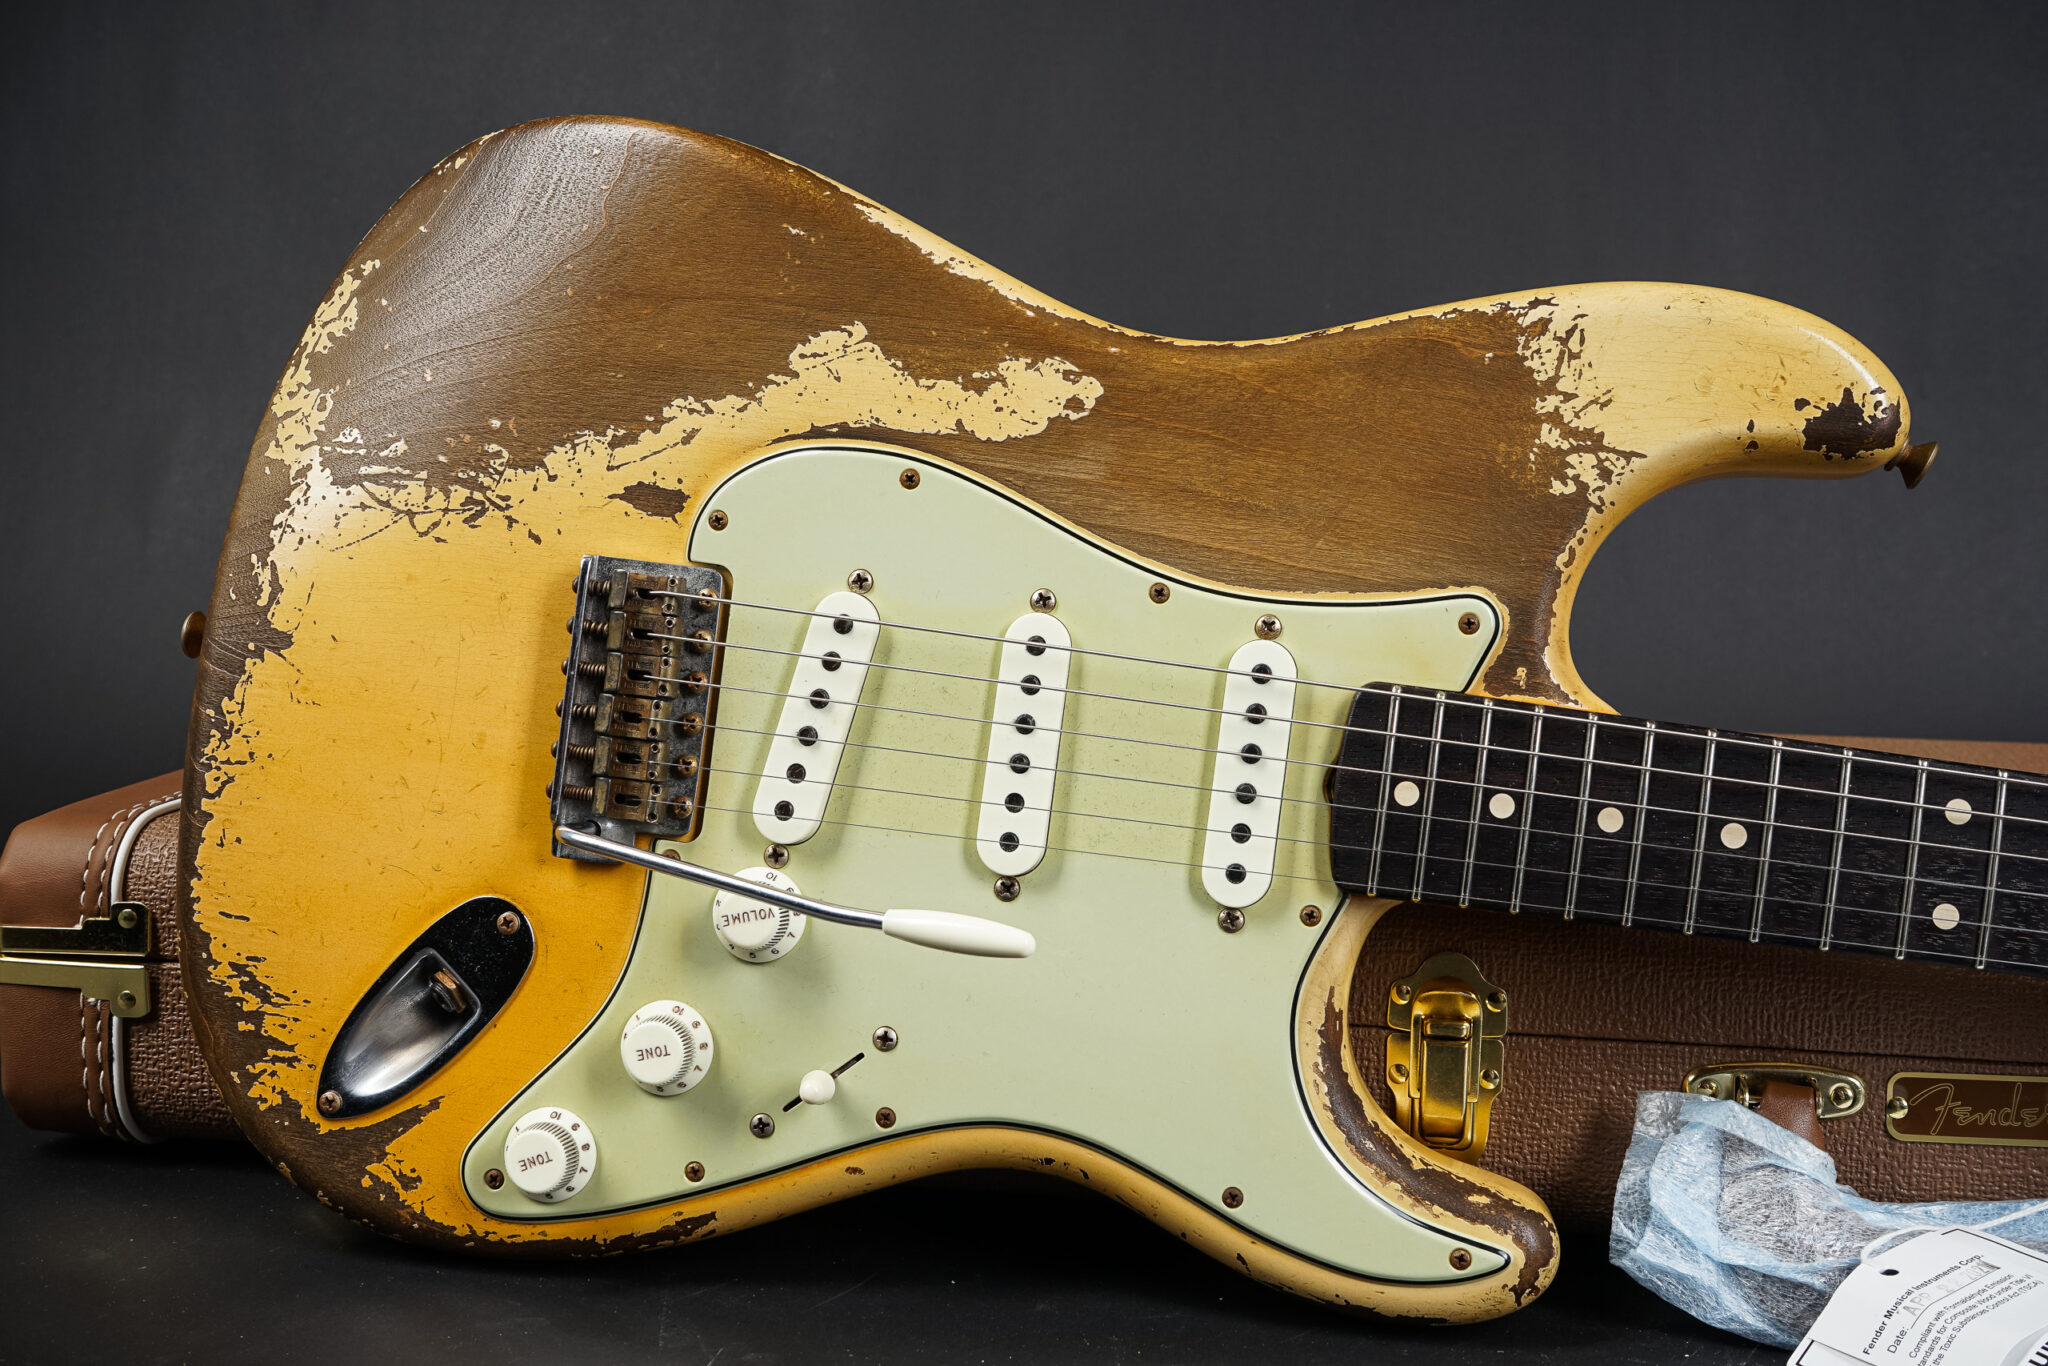 https://guitarpoint.de/app/uploads/products/2021-fender-carlos-lopez-1961-stratocaster-ultra-relic-aged-olympic-white/2021-Fender-Carlos-Lopez-Stratocaster-Ultimate-Relic-AOW-R111220-8-2048x1366.jpg